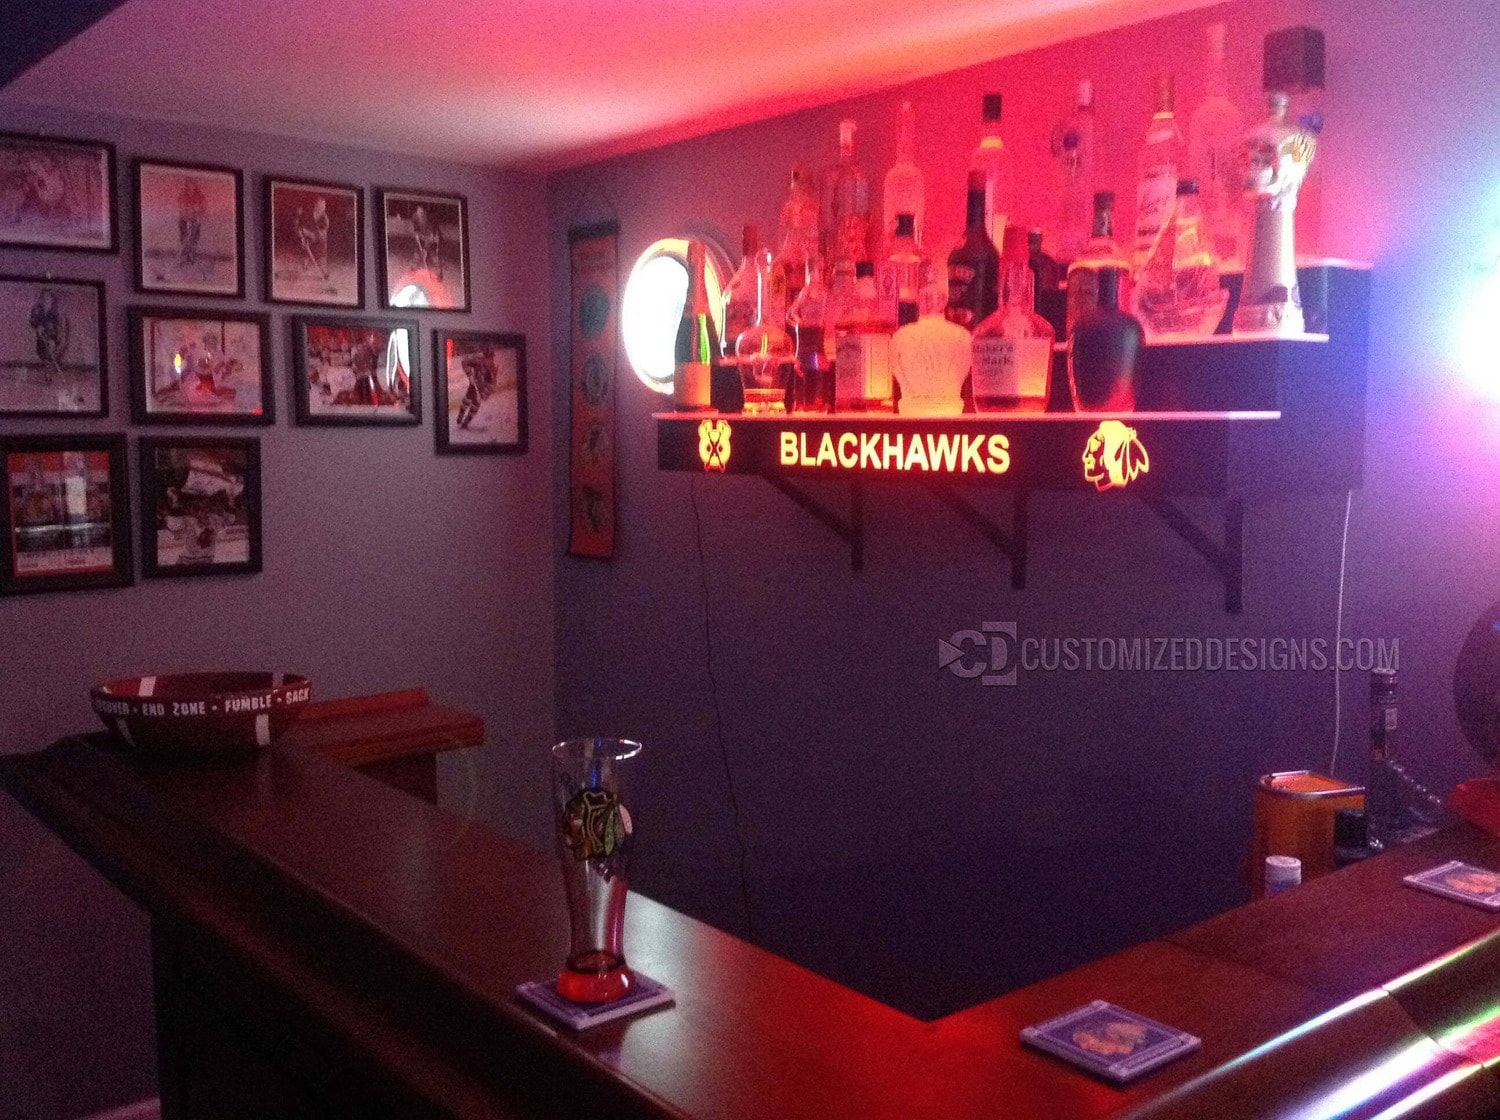 Sports Bar Ideas Pictures Customizeddesigns Com Sports Bar